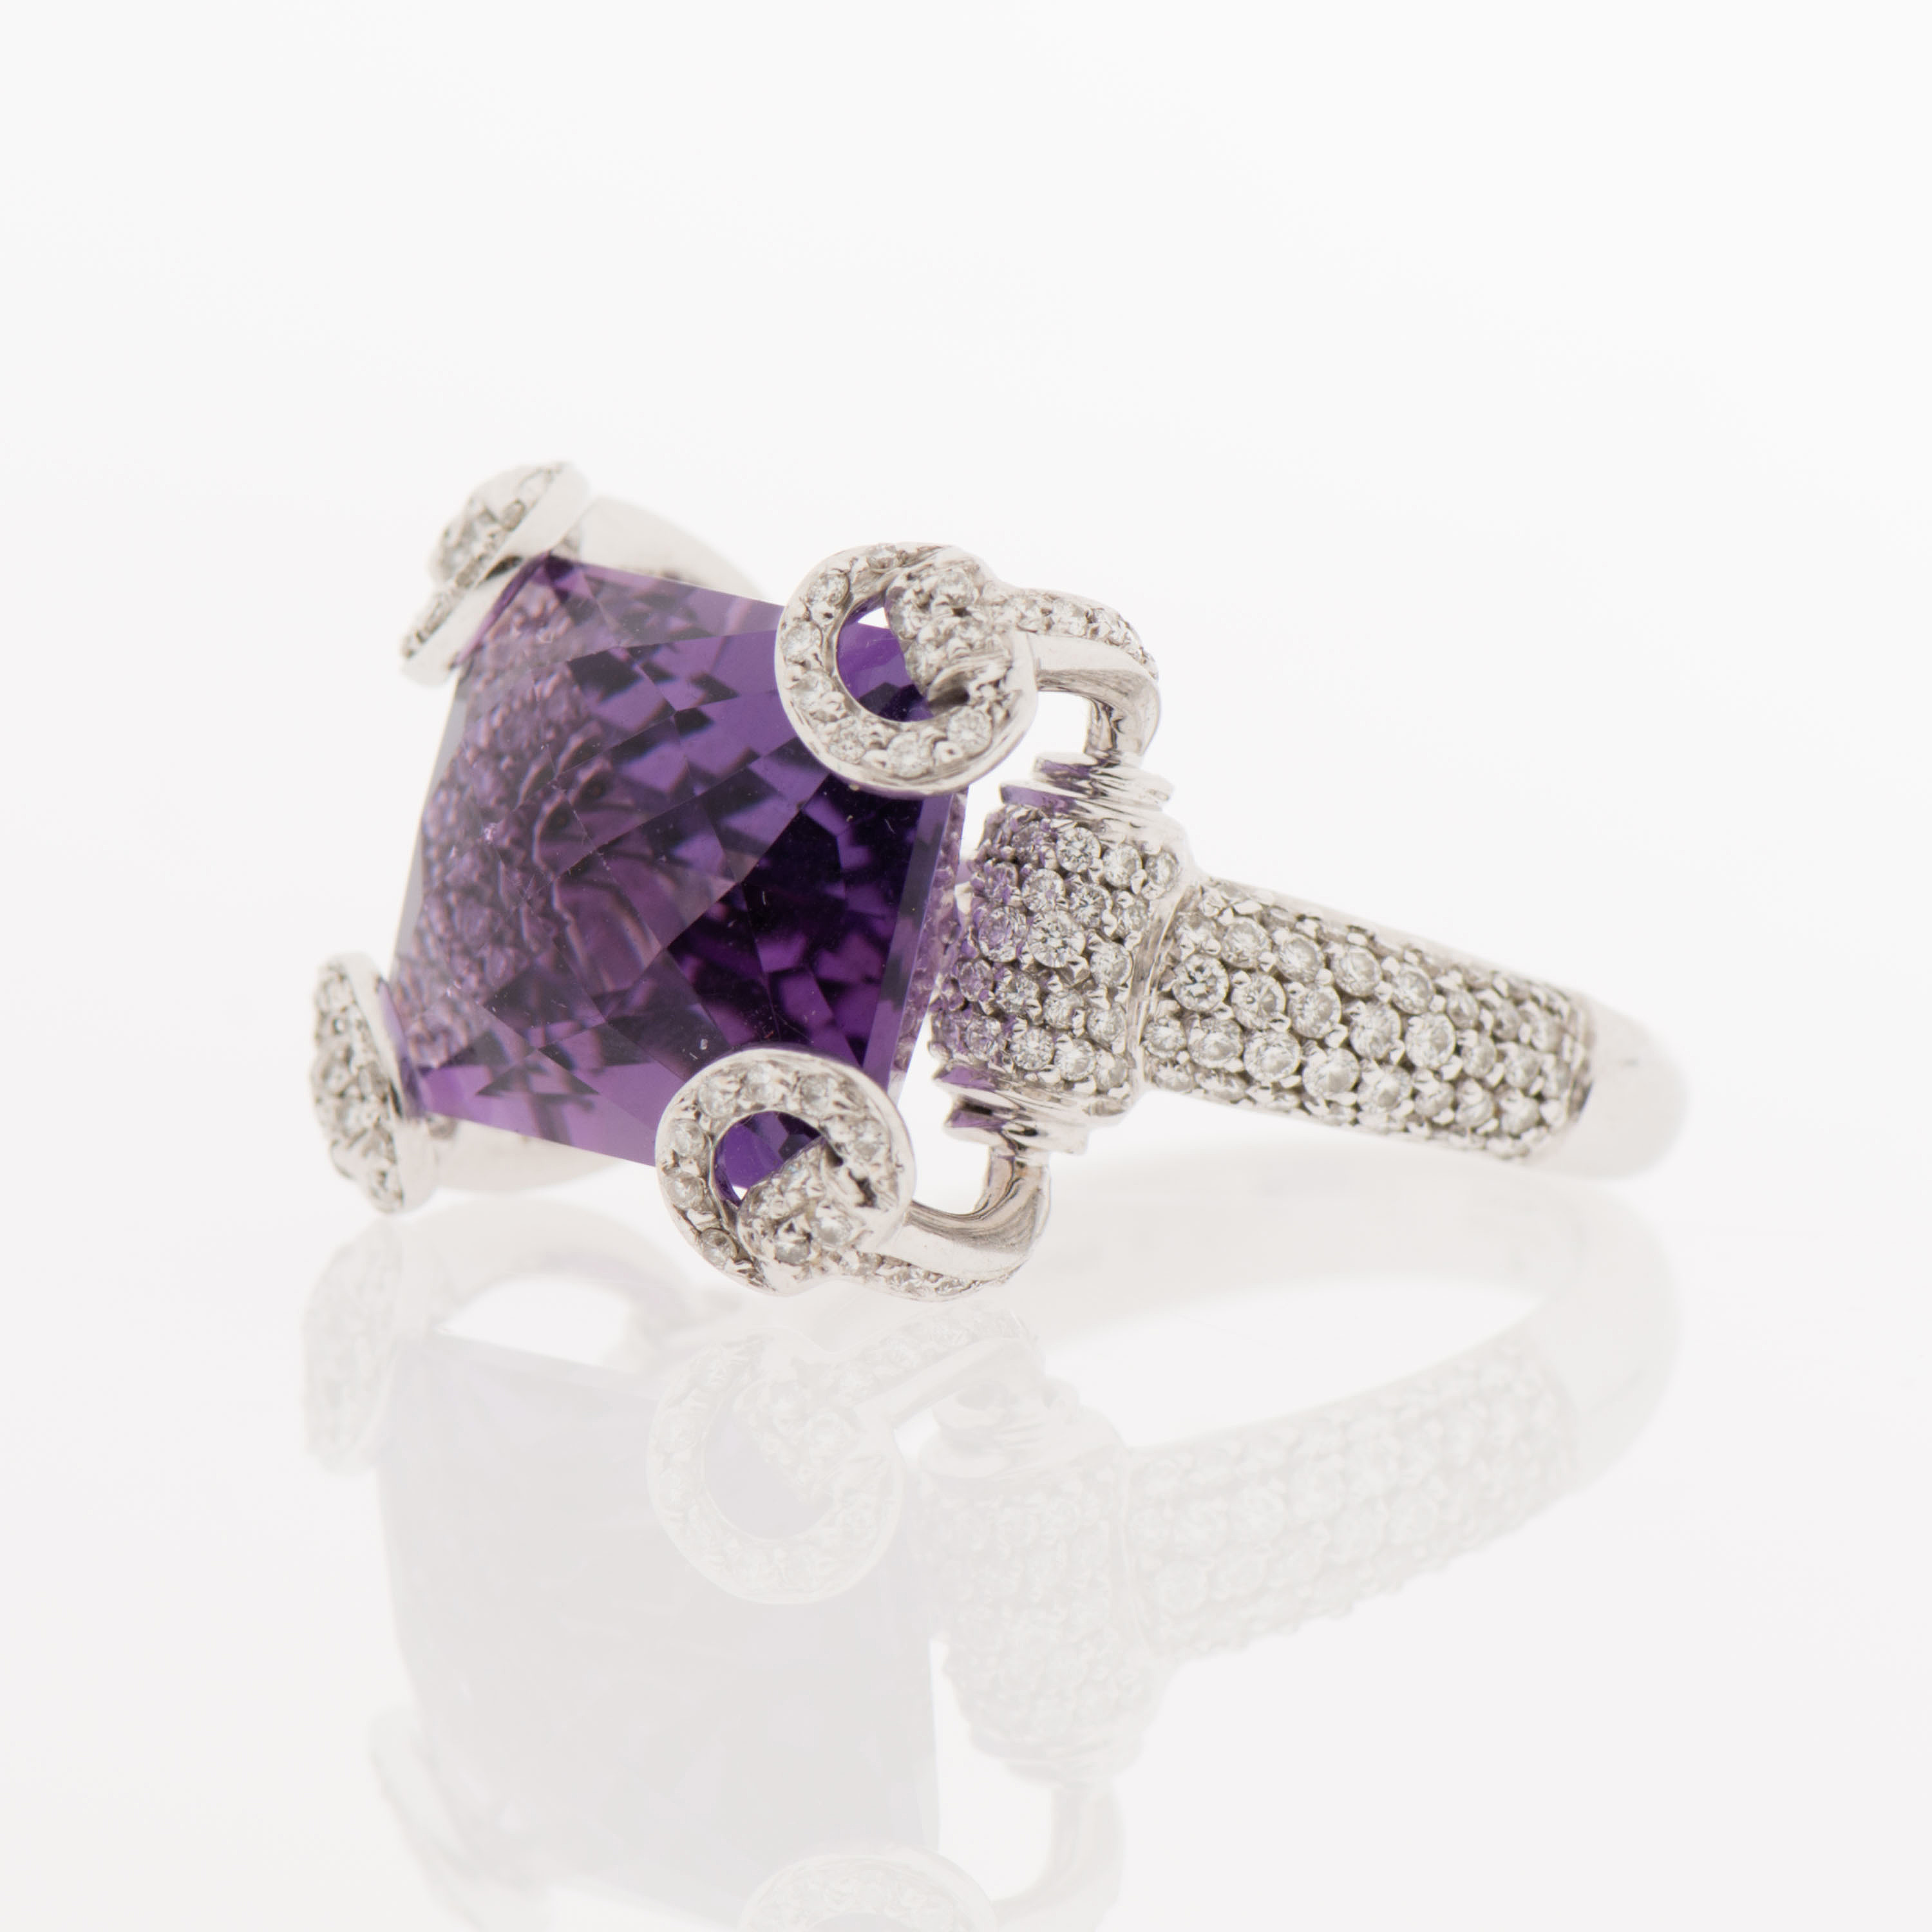 b882340ca A RING, Gucci Horsebit, facetted amethyst, diamonds, 18K white gold. -  Bukowskis